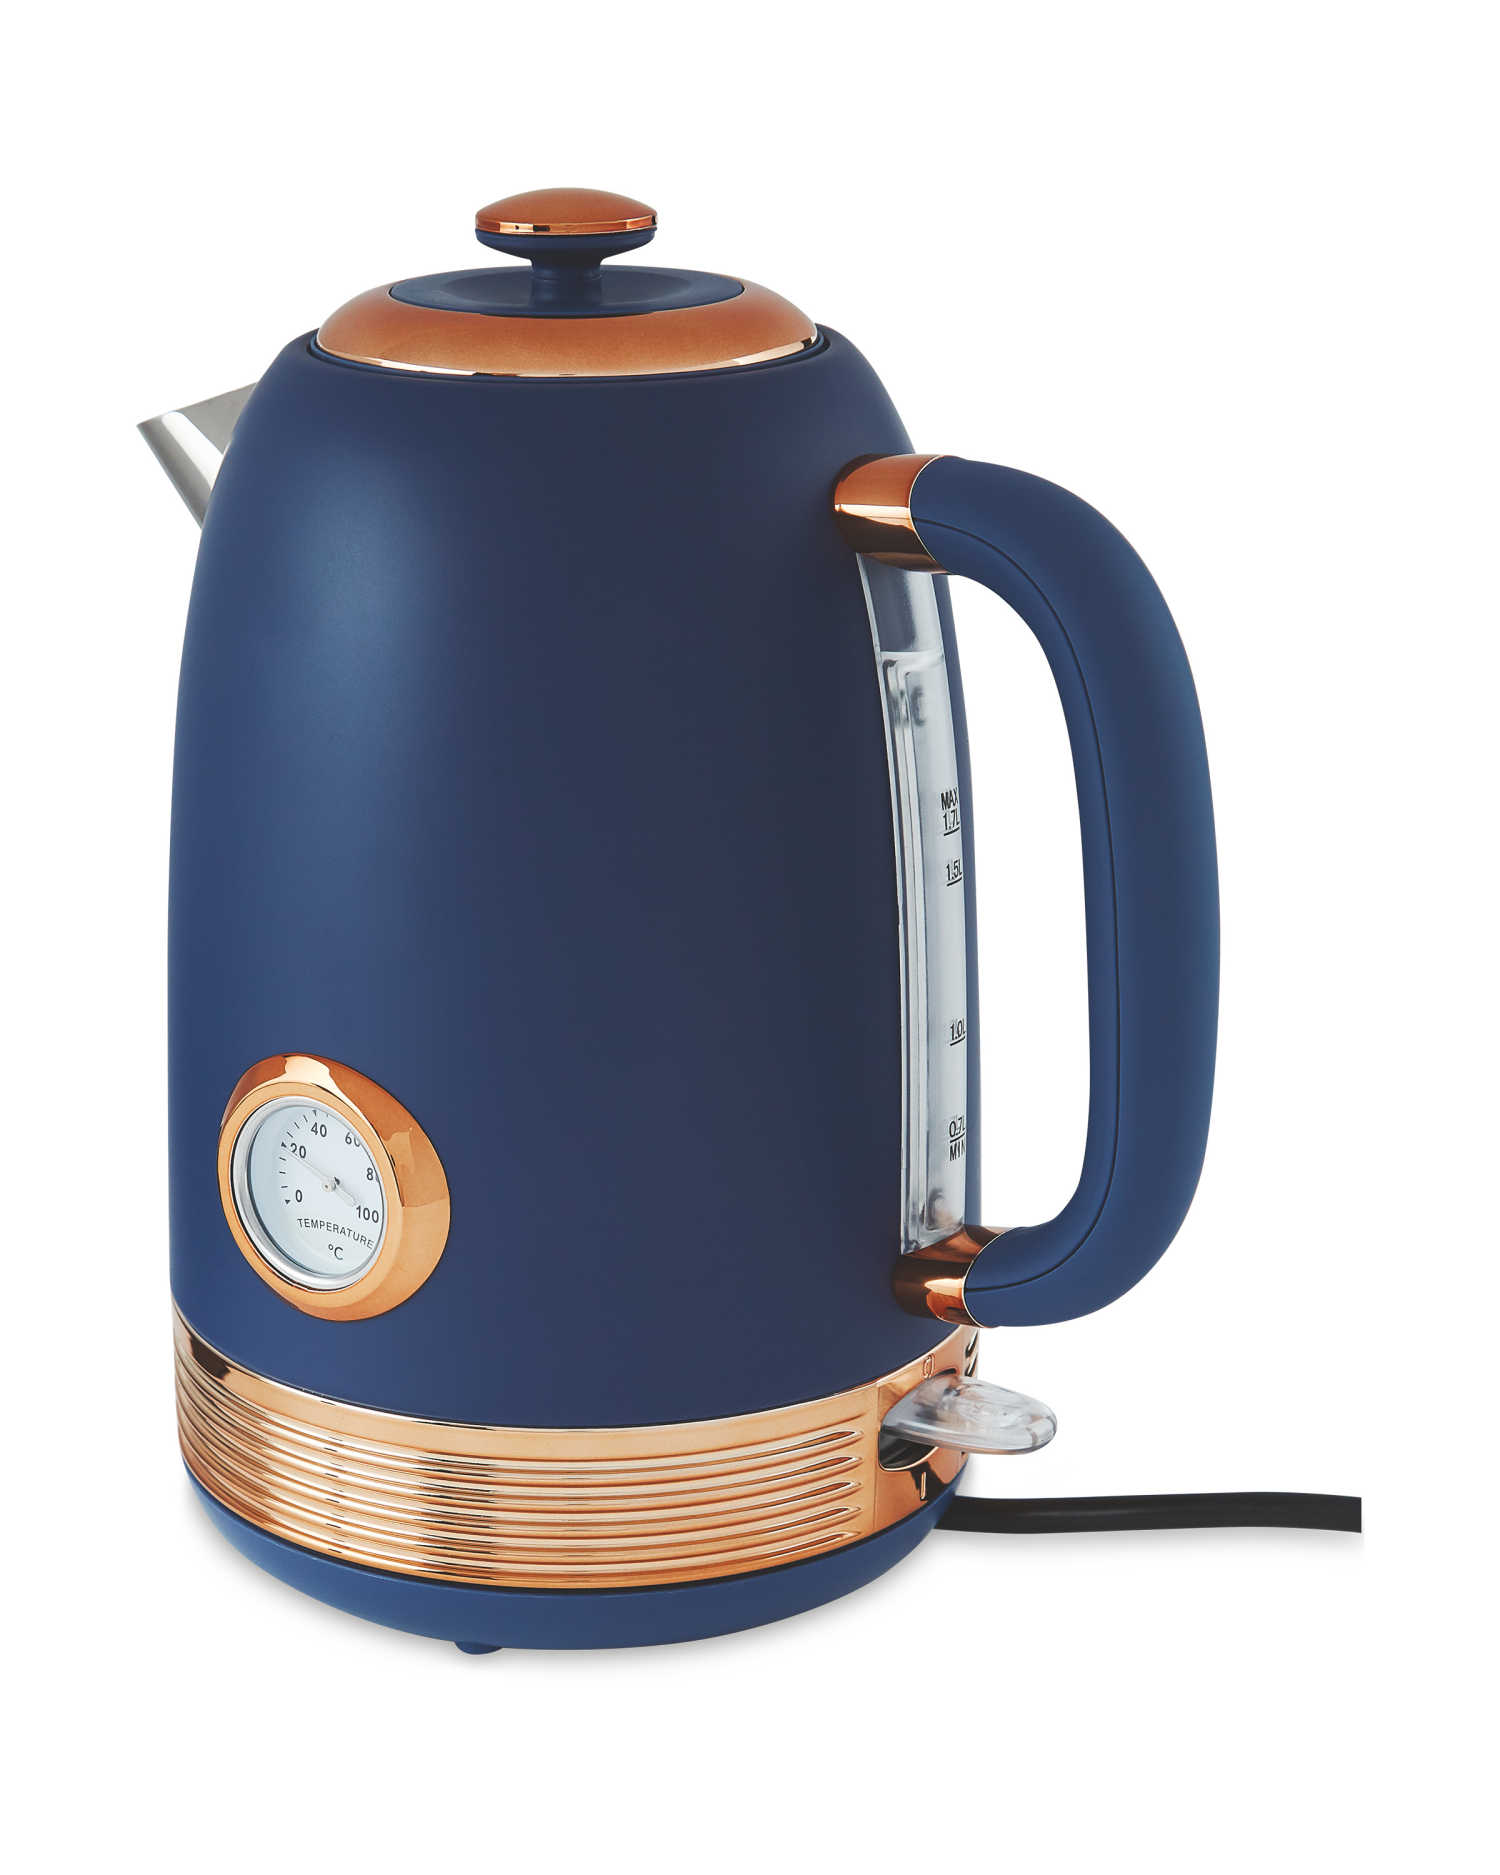 Save £12 on this retro navy blue kettle at aldi.co.uk